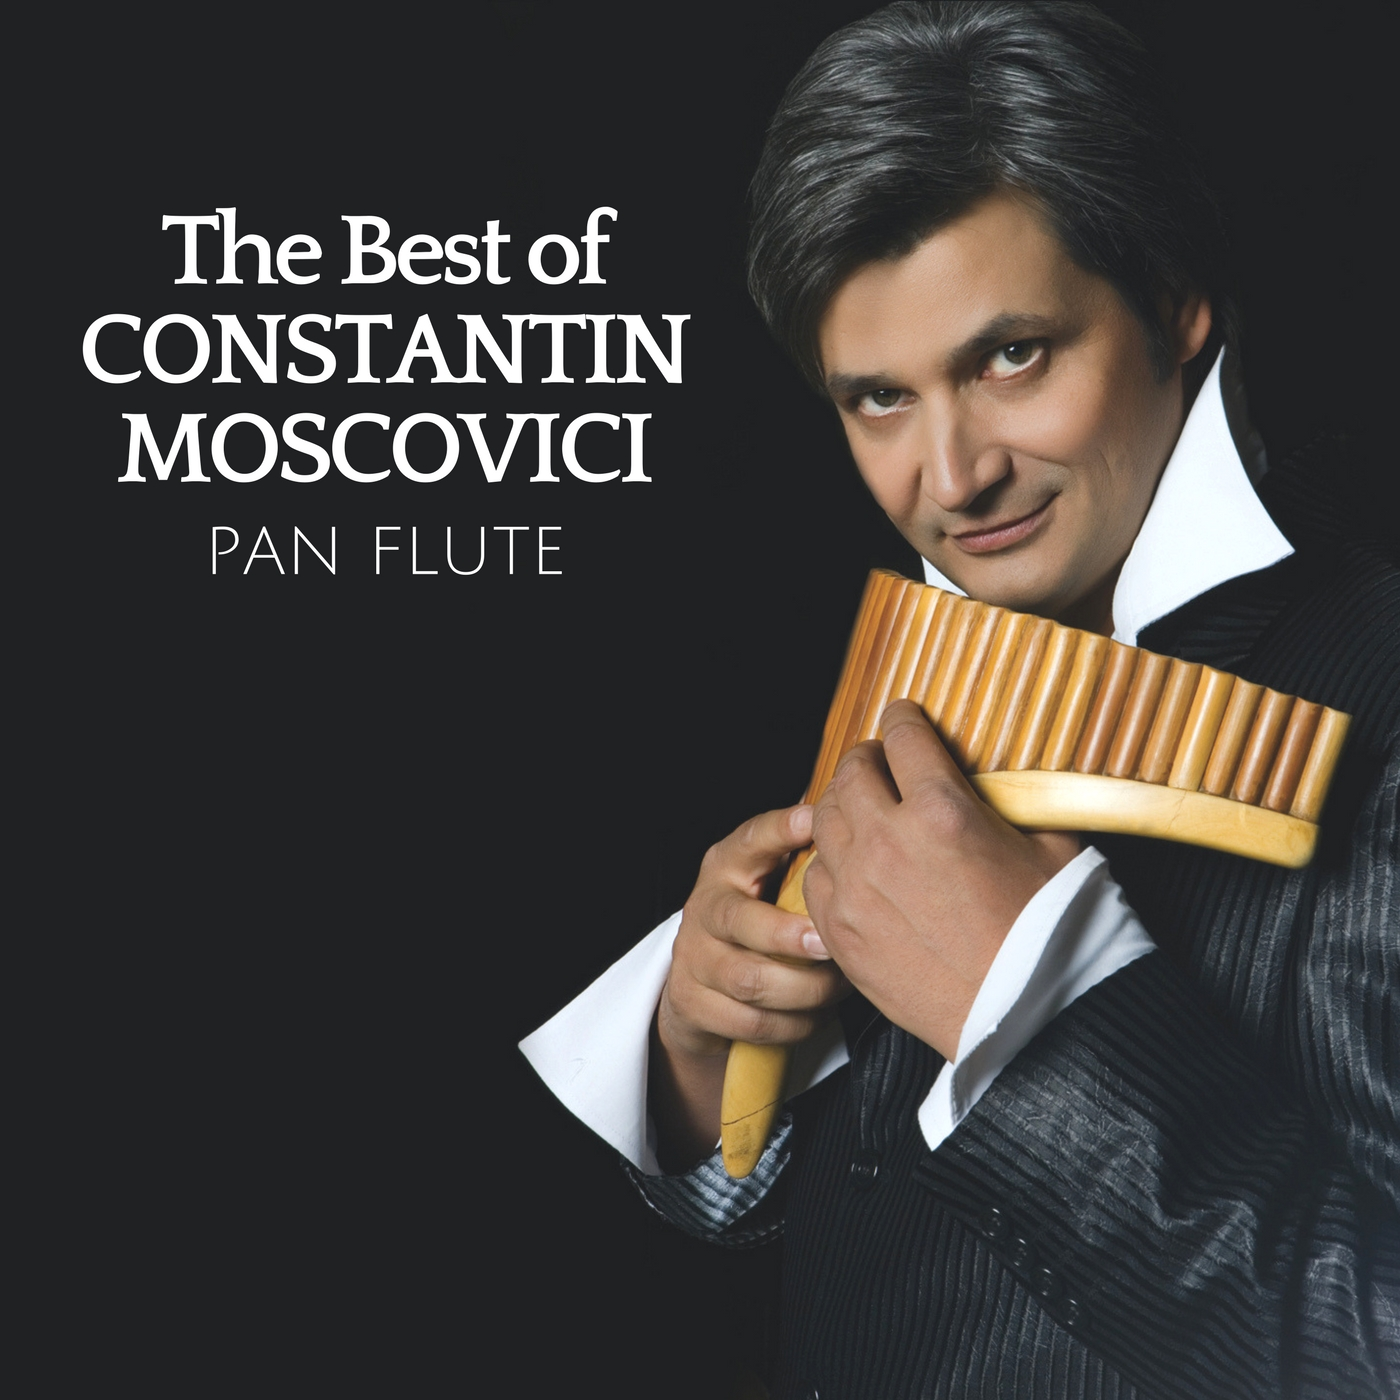 The Best of Constantin Moscovici - Master of Pan Flute